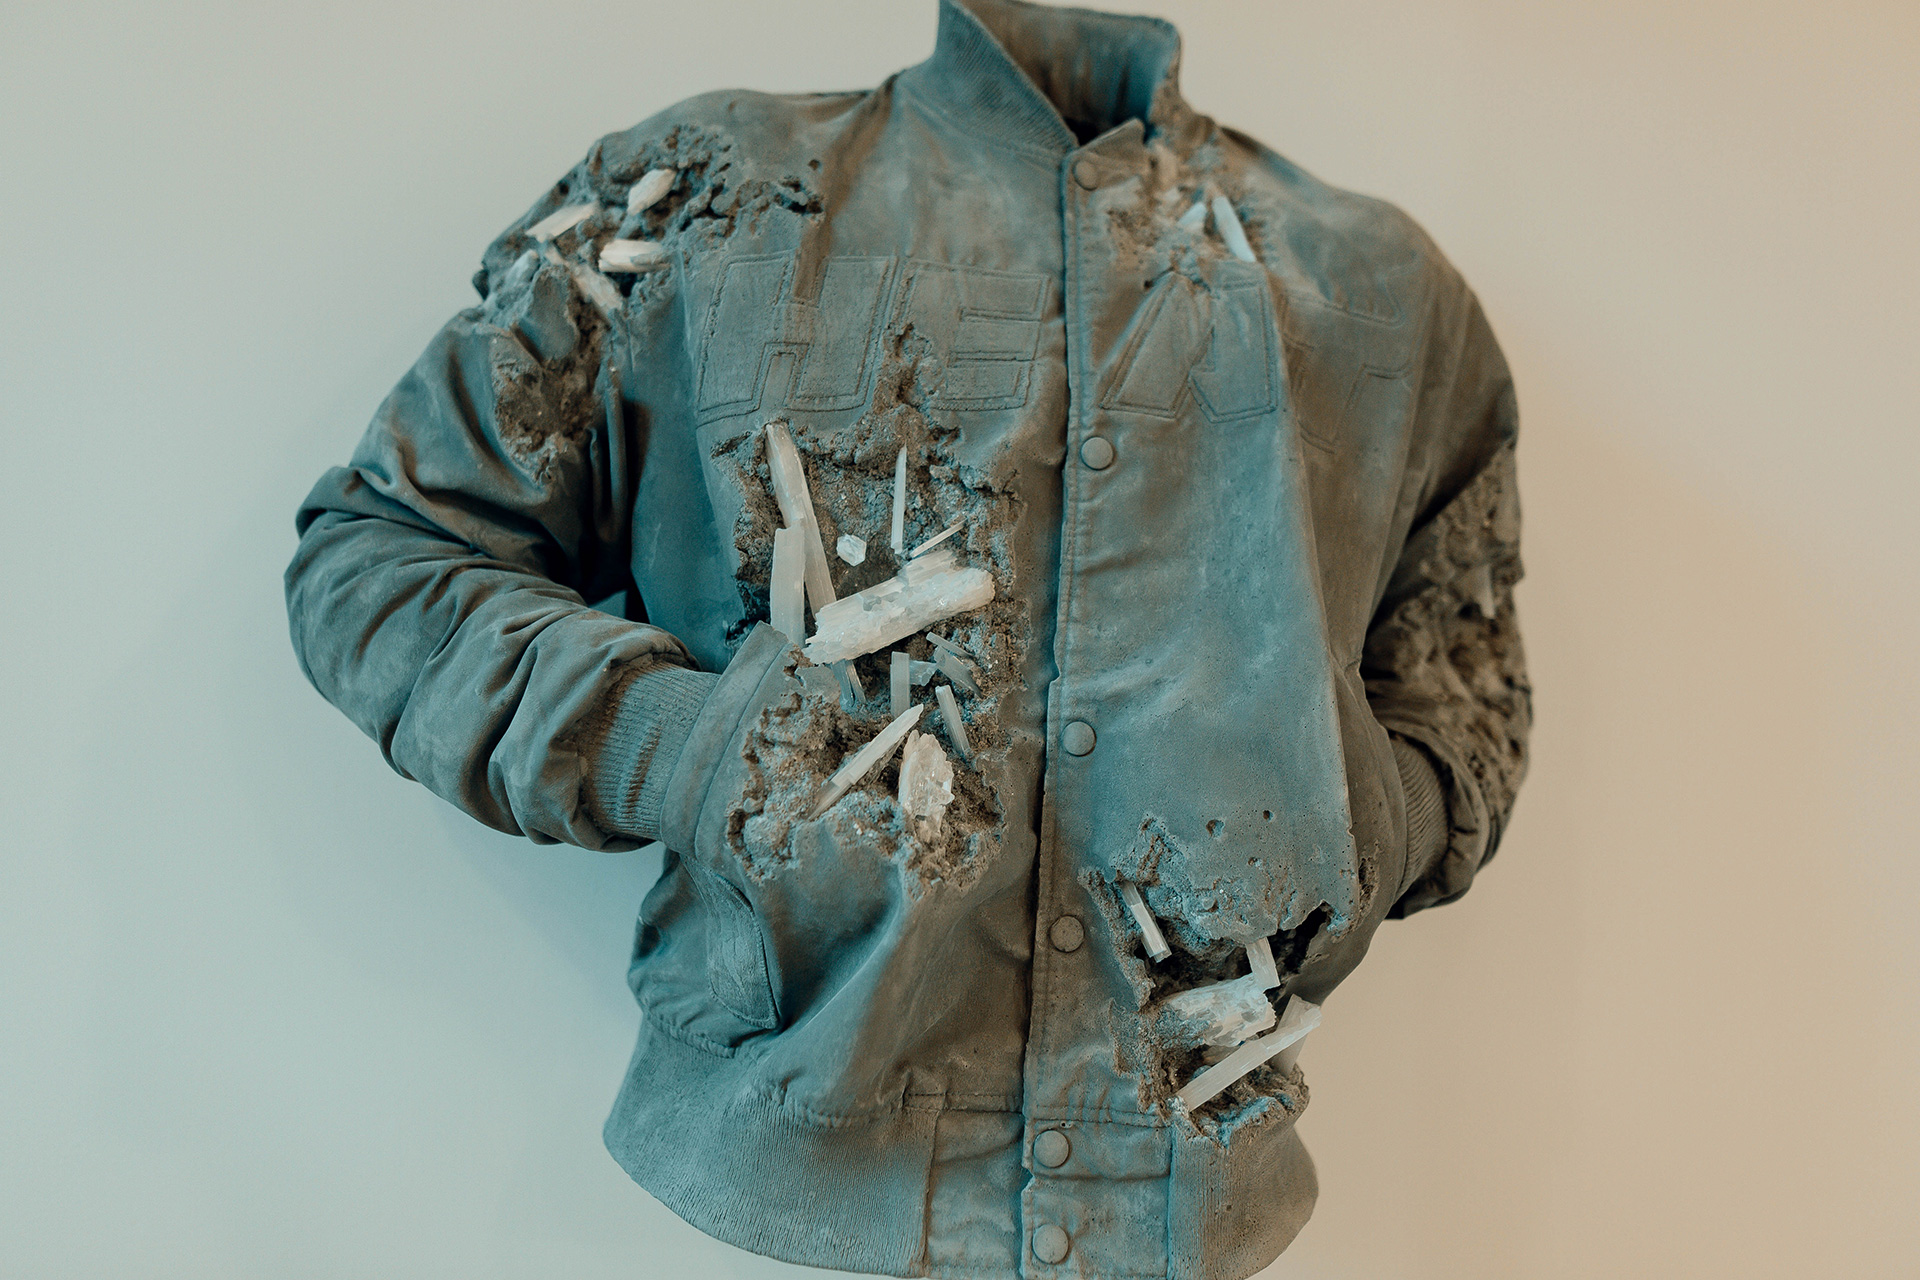 Daniel Arsham, Miami Heat Jacket, Connecting Time, MOCO Museum | Connecting Time | Daniel Arsham | STIR